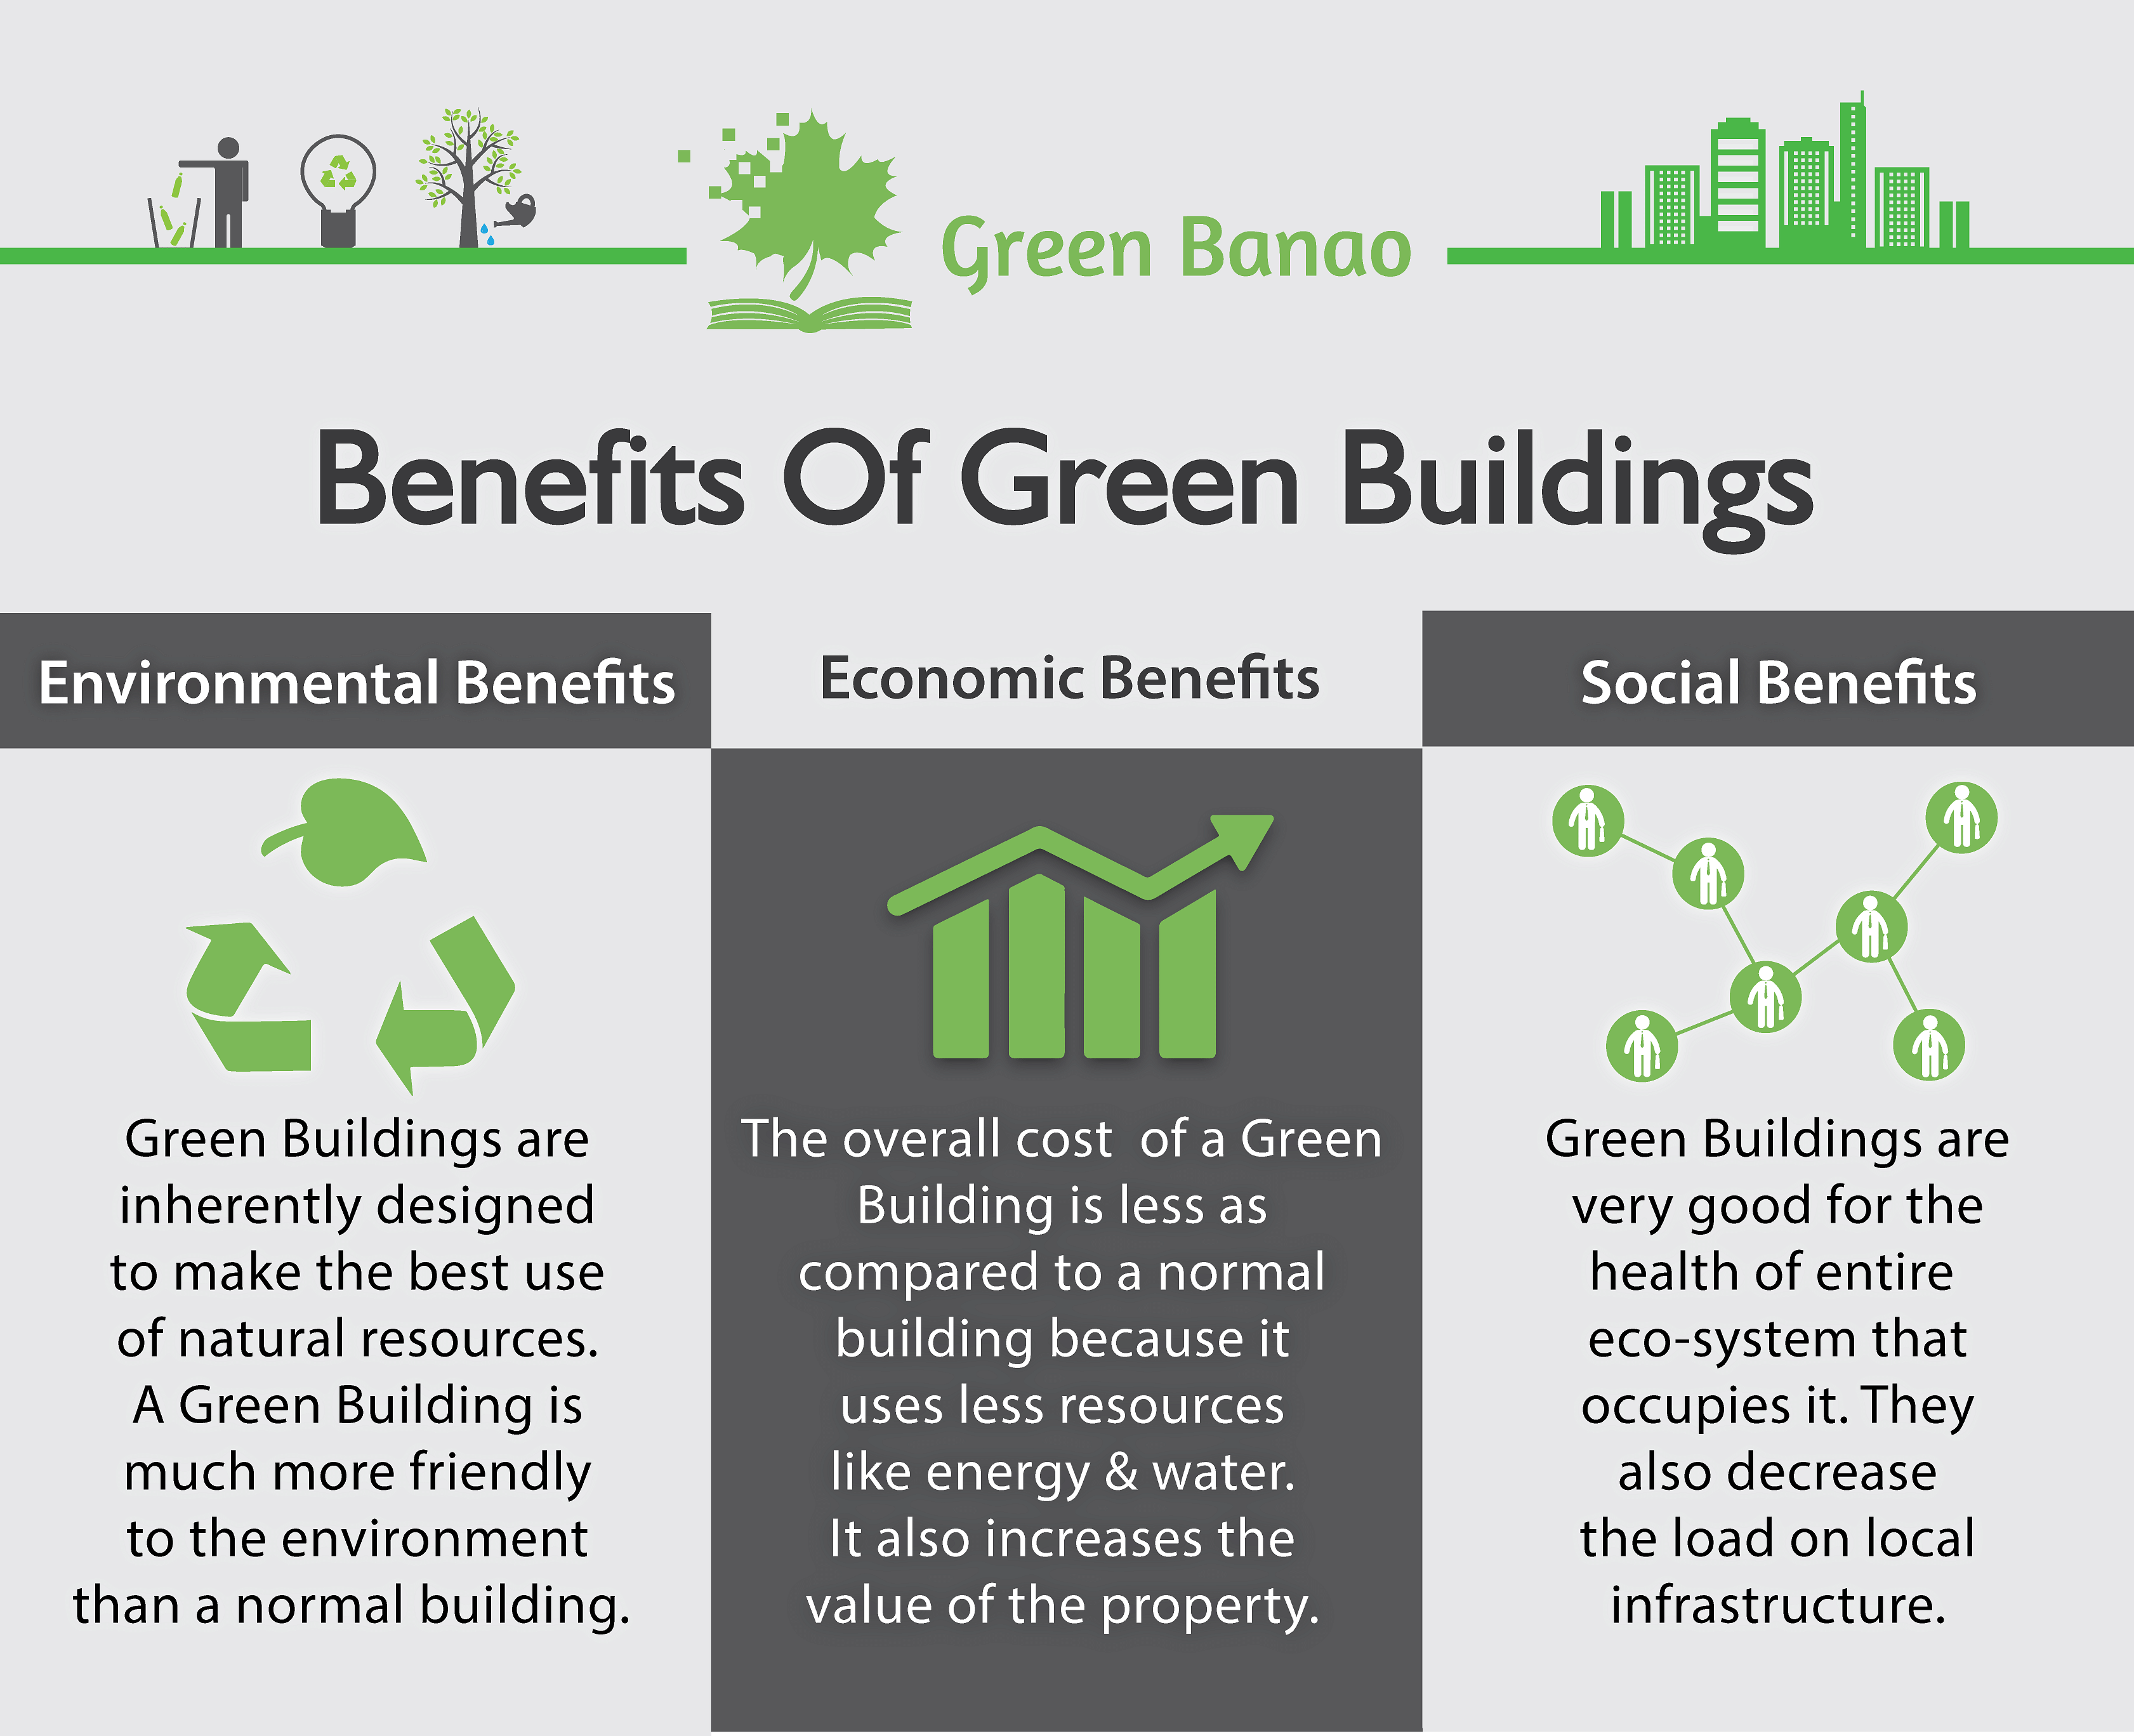 3 major benefits of Green Buildings